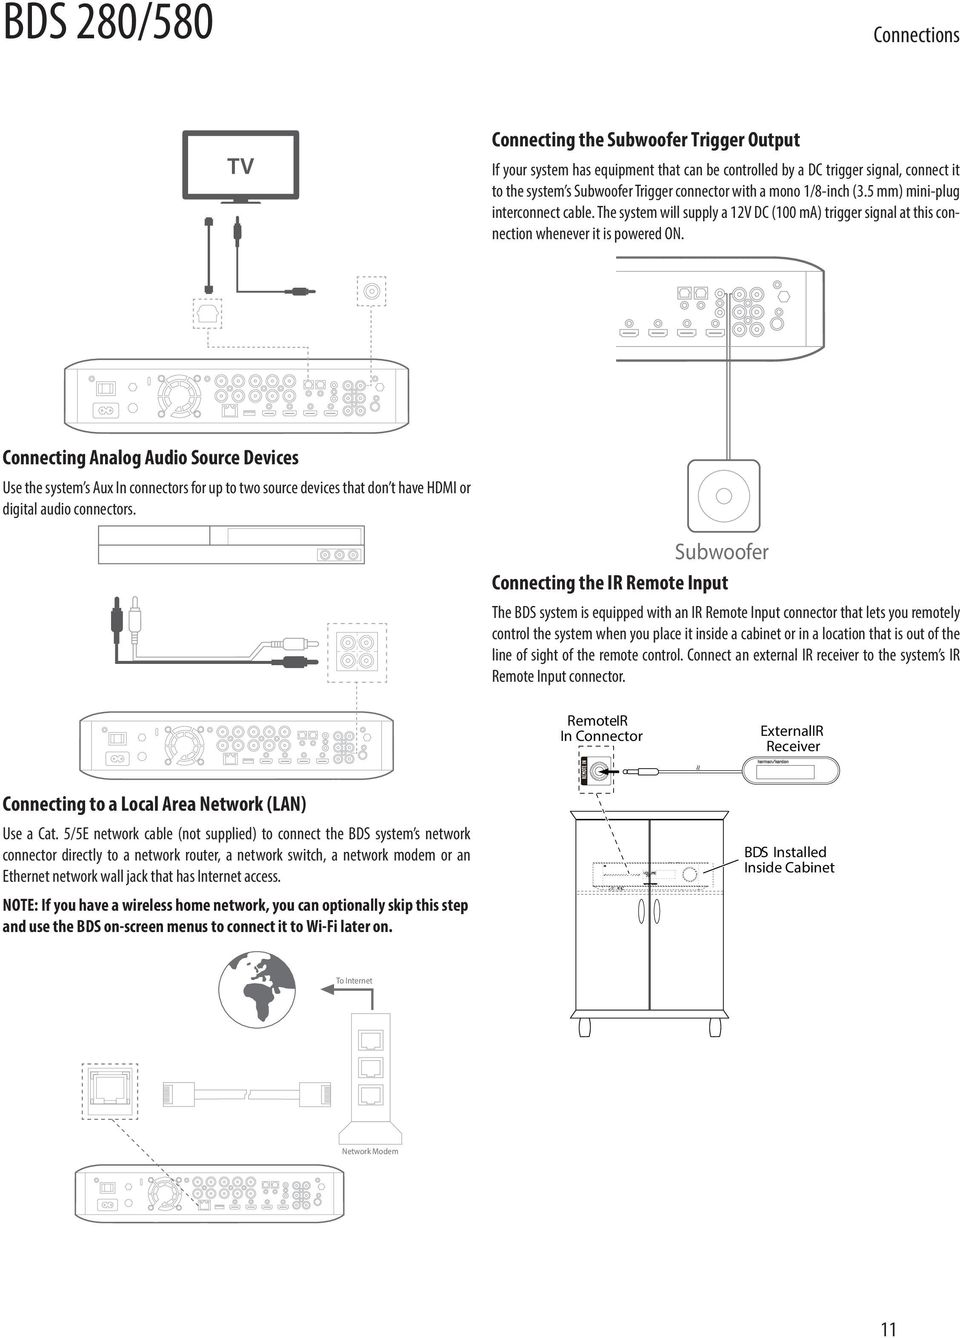 Bds 280 580 3d Blu Ray Tm Disc System Owner S Manual Applicable Wireless Home Network Design Diagram Connecting Analog Audio Source Devices Use The Aux In Connectors For Up To Two